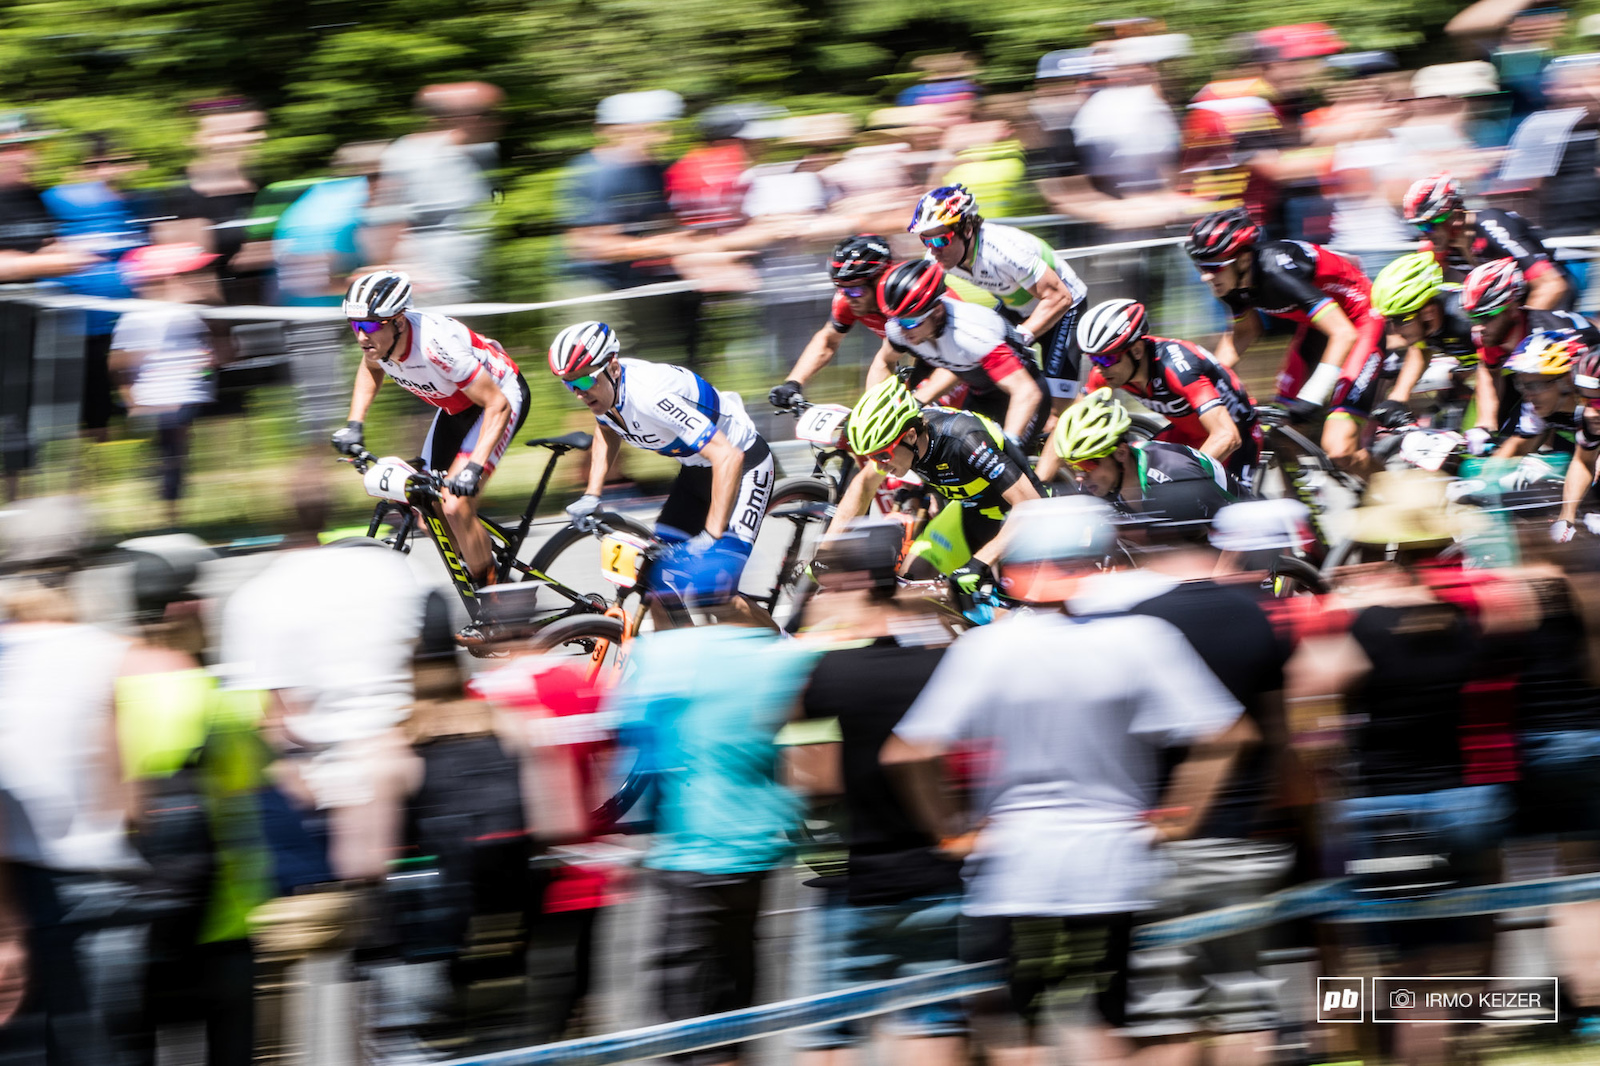 An uphill start saw riders charging hard.